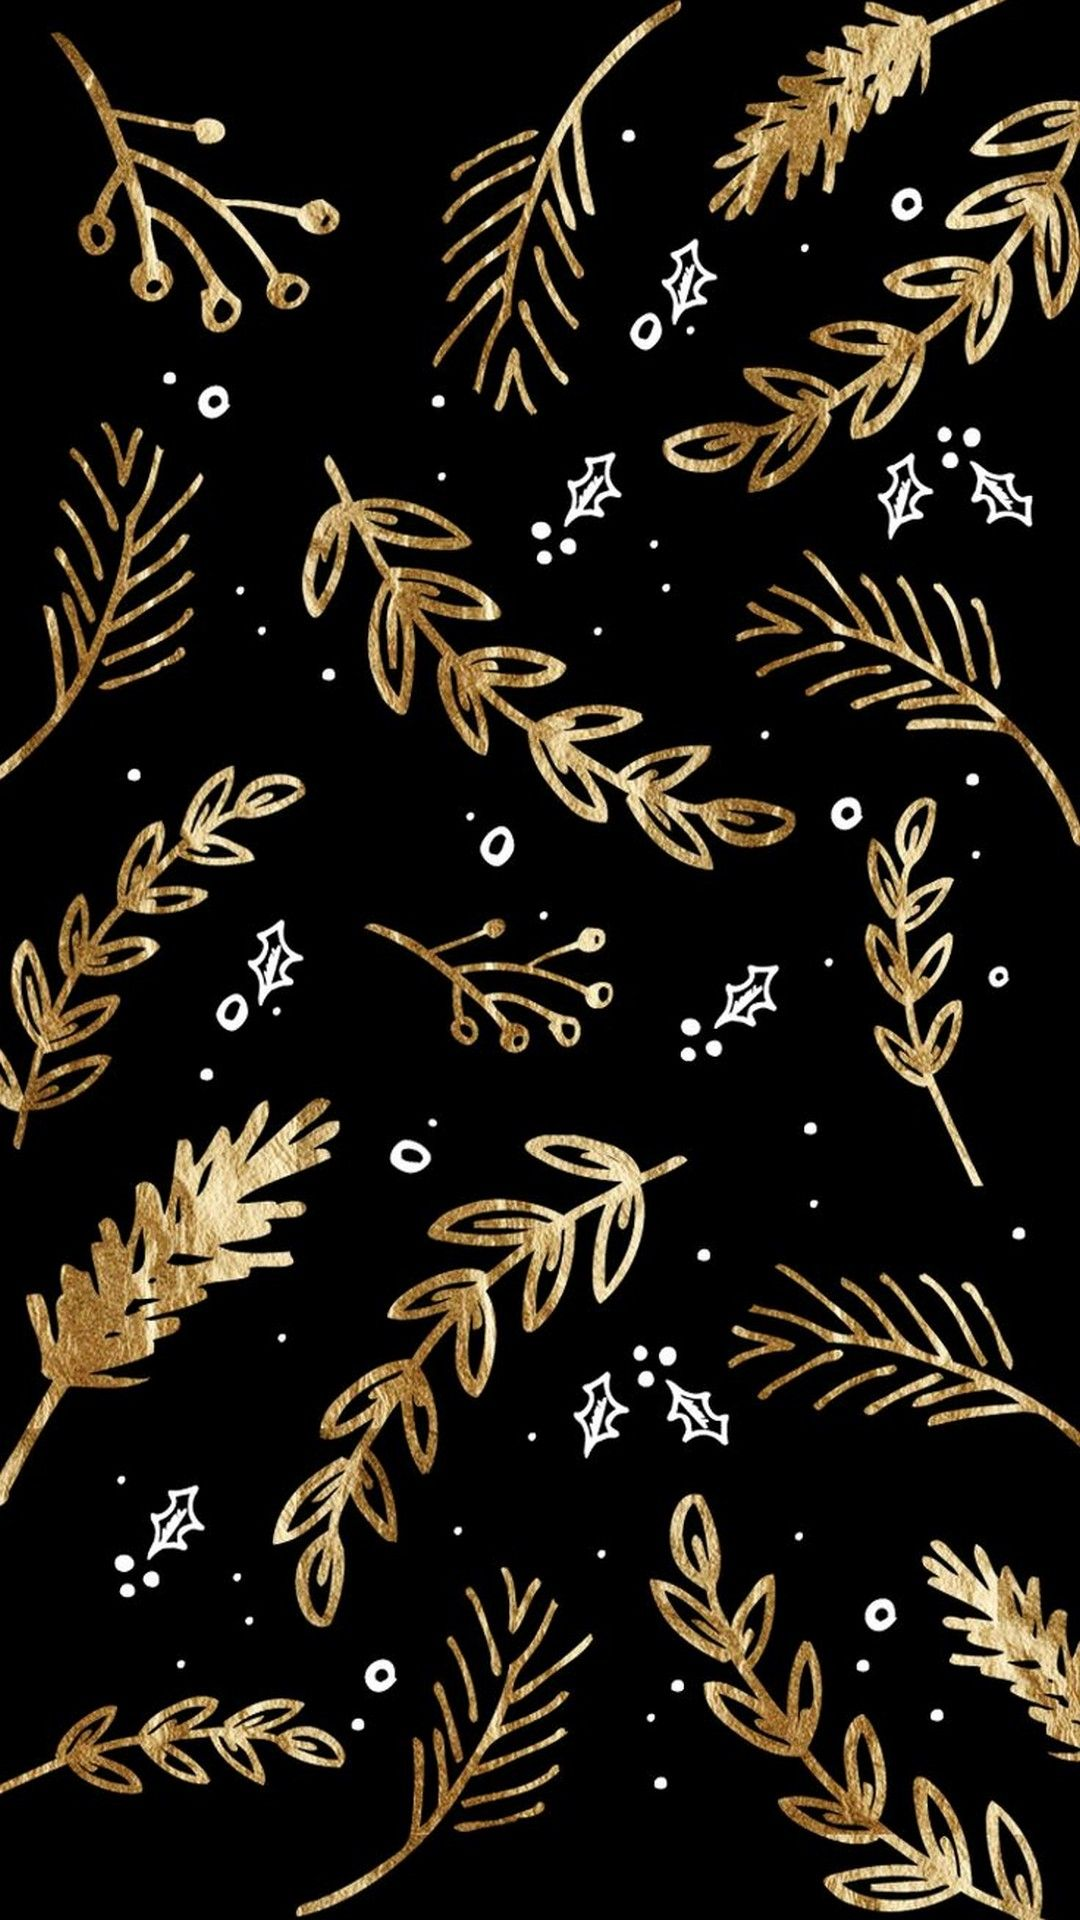 Black And Gold Wallpaper Android Best Android Wallpapers Gold Wallpaper Android Winter Wallpaper Gold Wallpaper